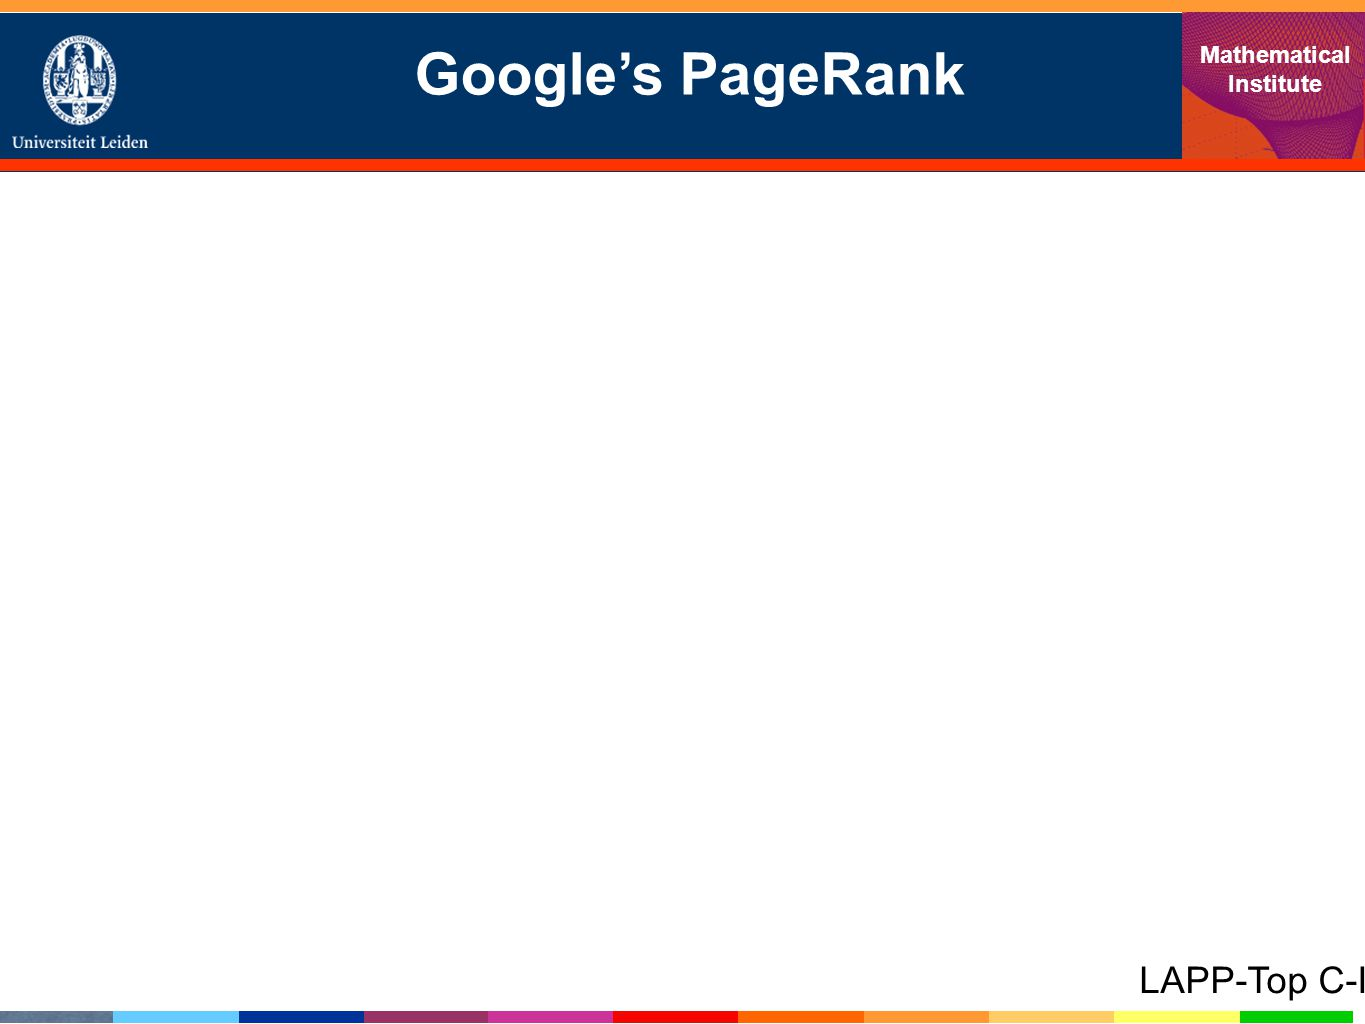 Google's PageRank Mathematical Institute LAPP-Top C-I